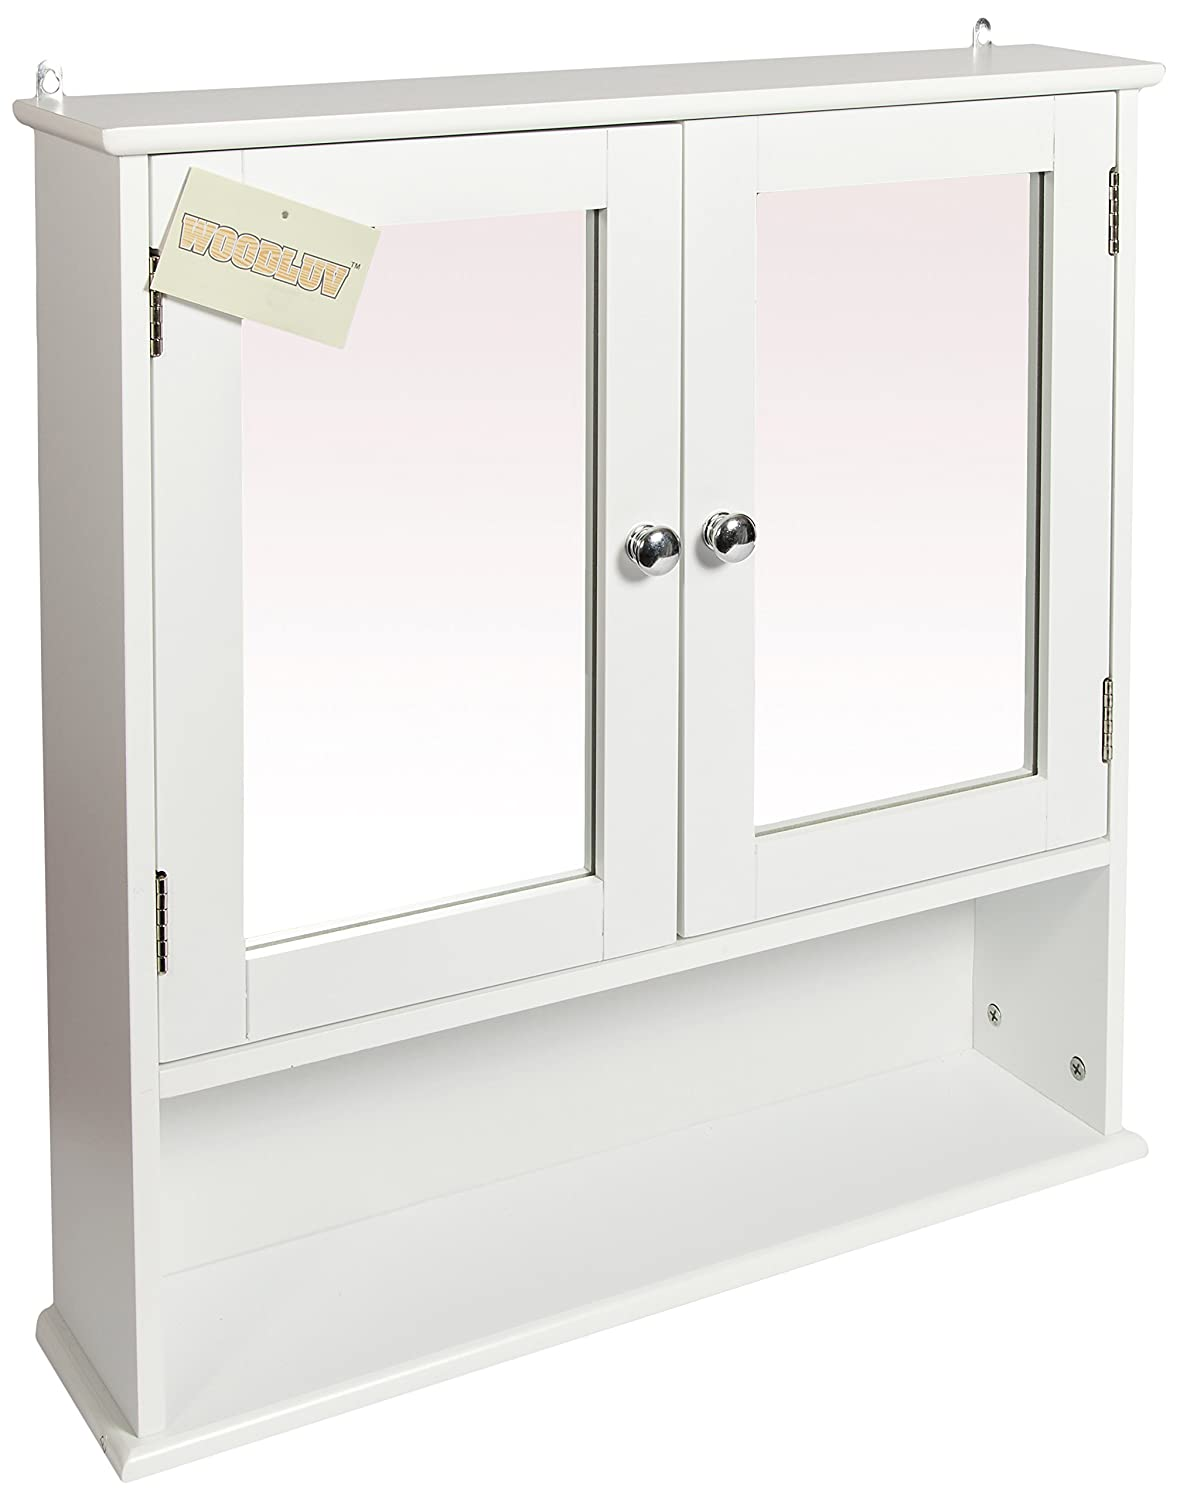 woodluv Wall Mounted Mirror Cabinet Bathroom Storage Furniture, White Elitehousewares E5-1052